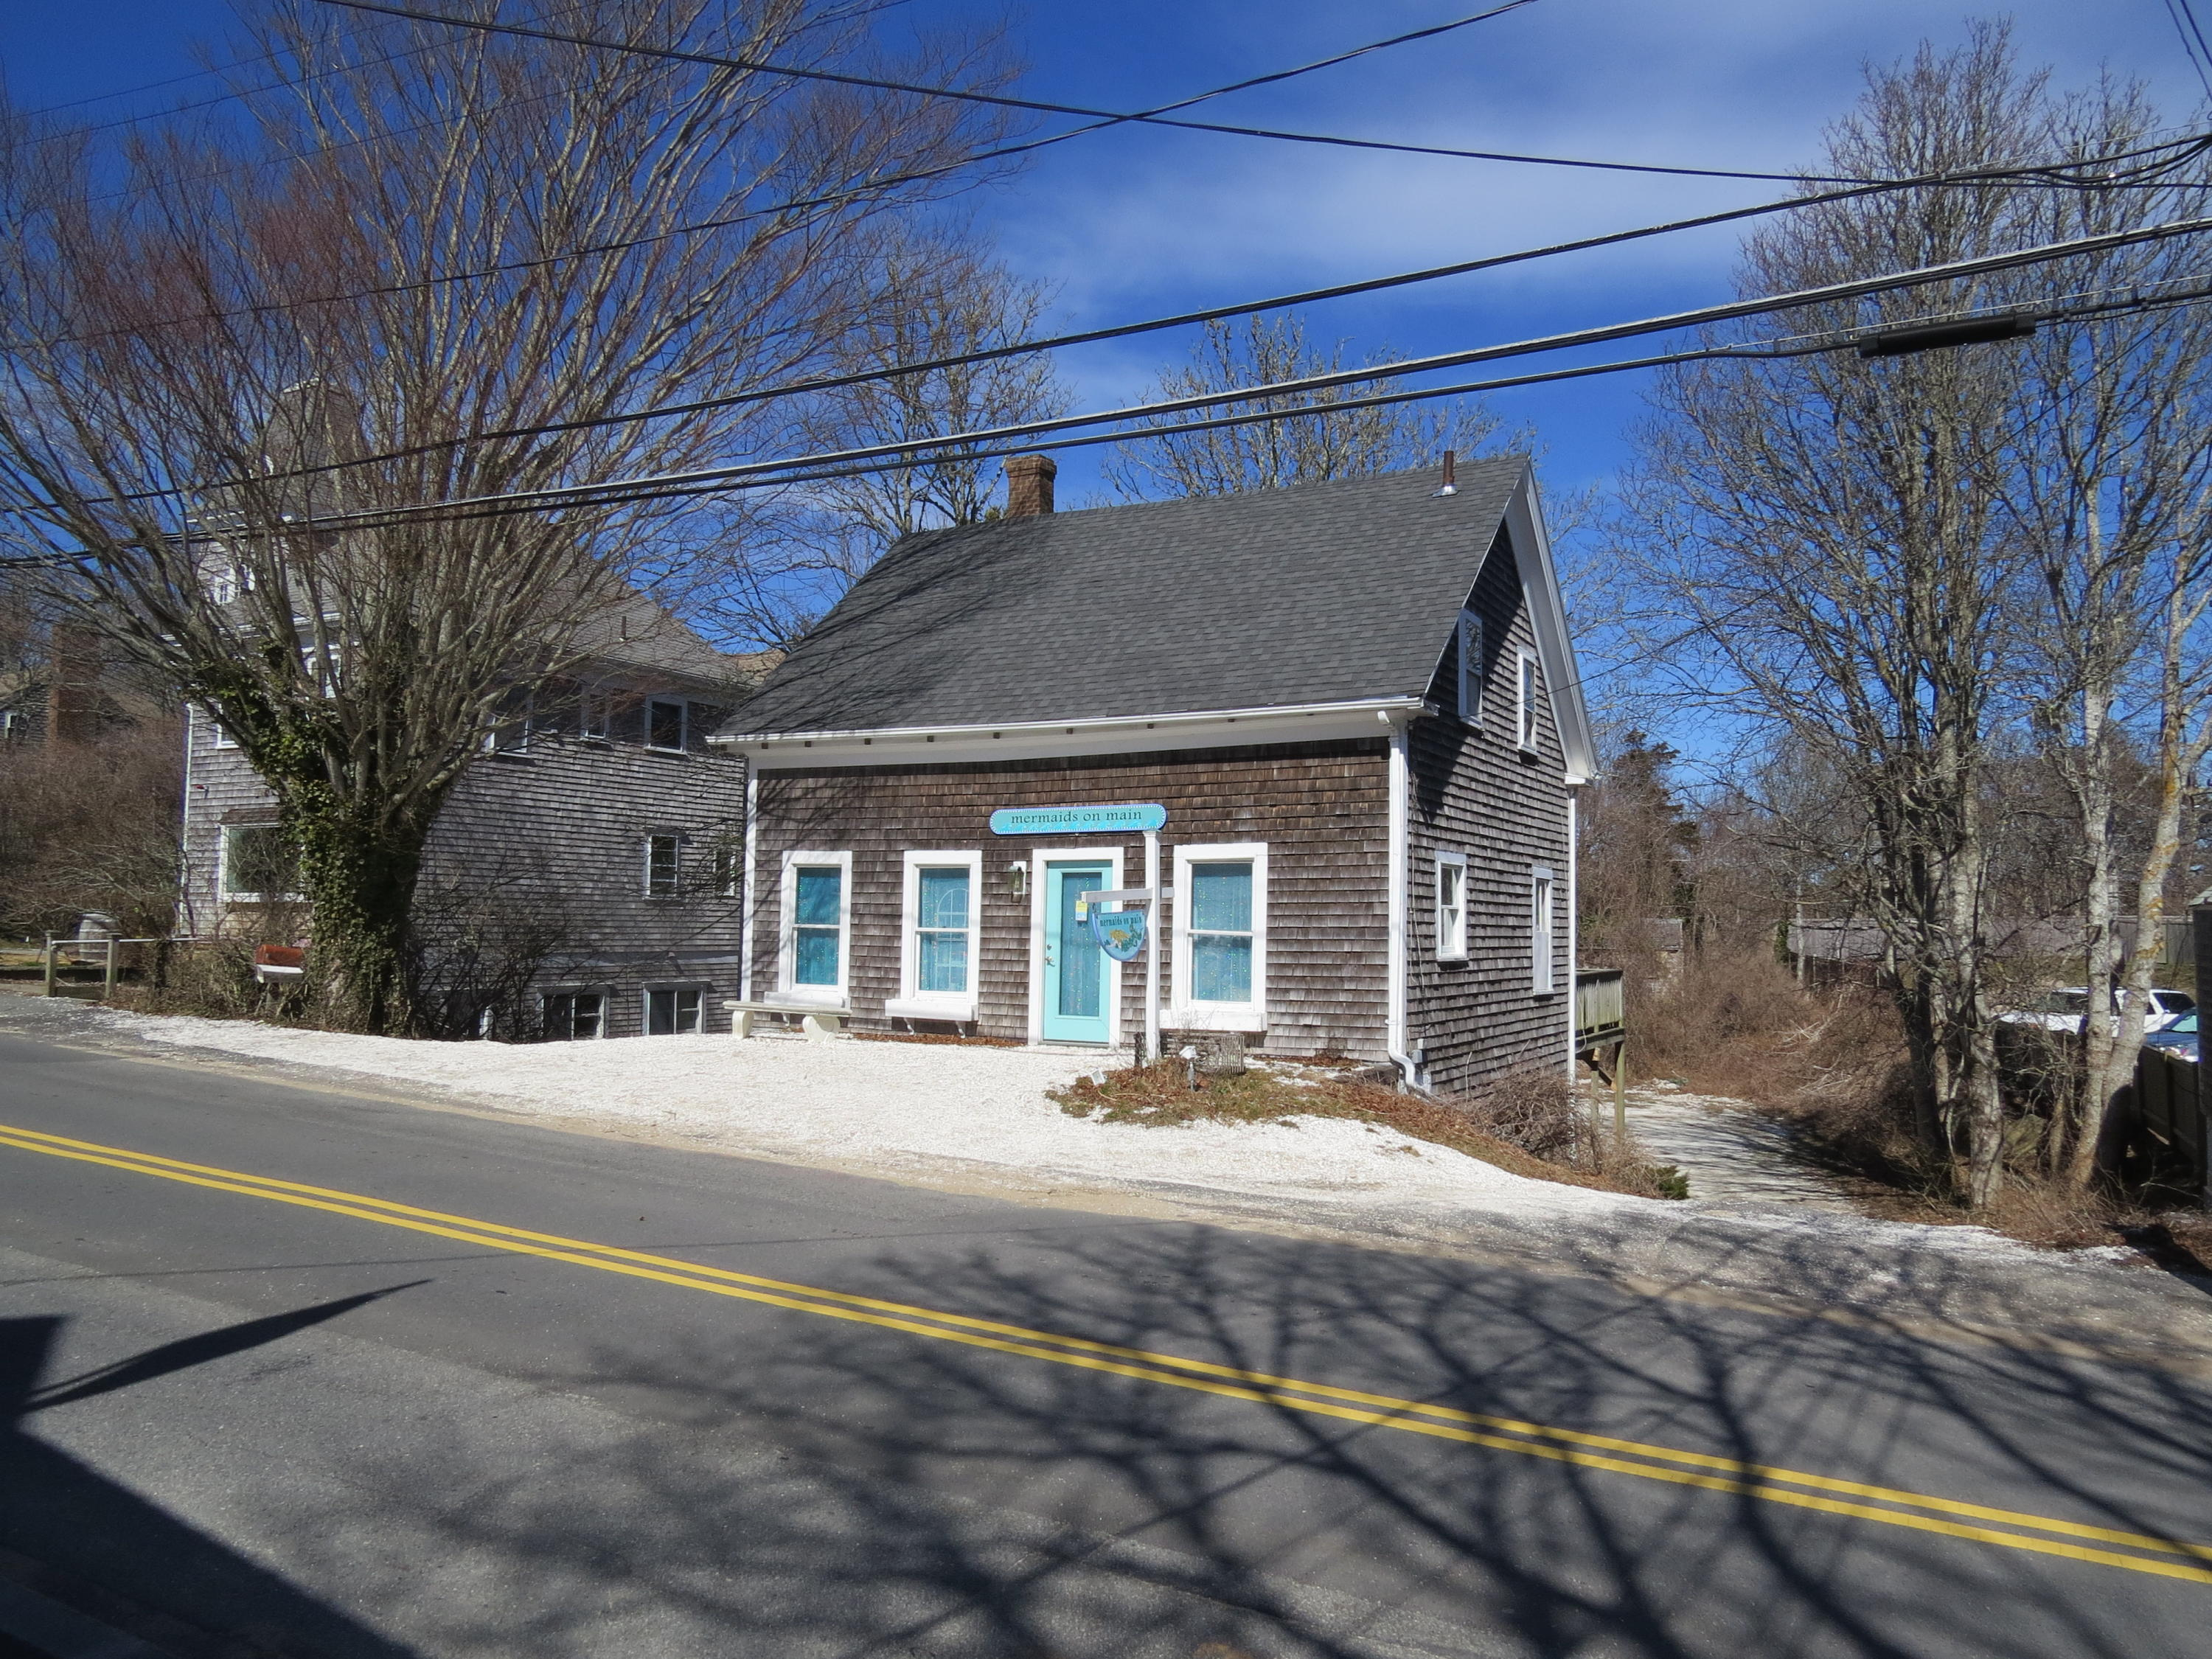 Chatham Real Estate - Cape Cod Antique , 410 Main Street, Chatham MA, 02633   Listed at $895,000